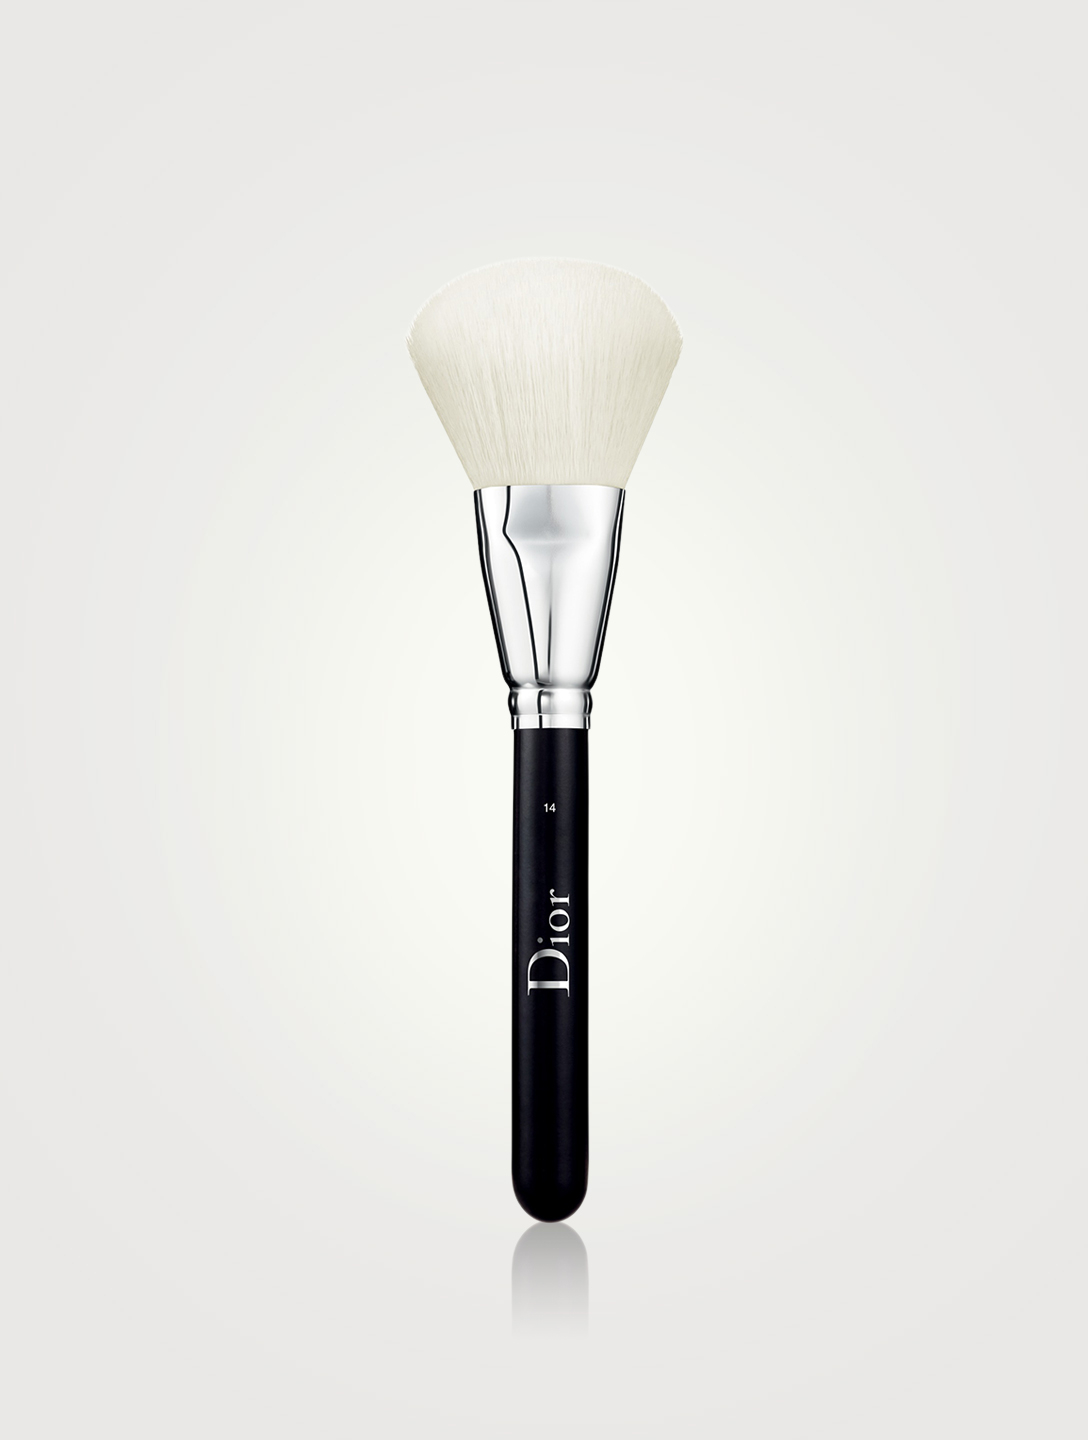 DIOR Dior Backstage Powder Brush N°14 Beauty